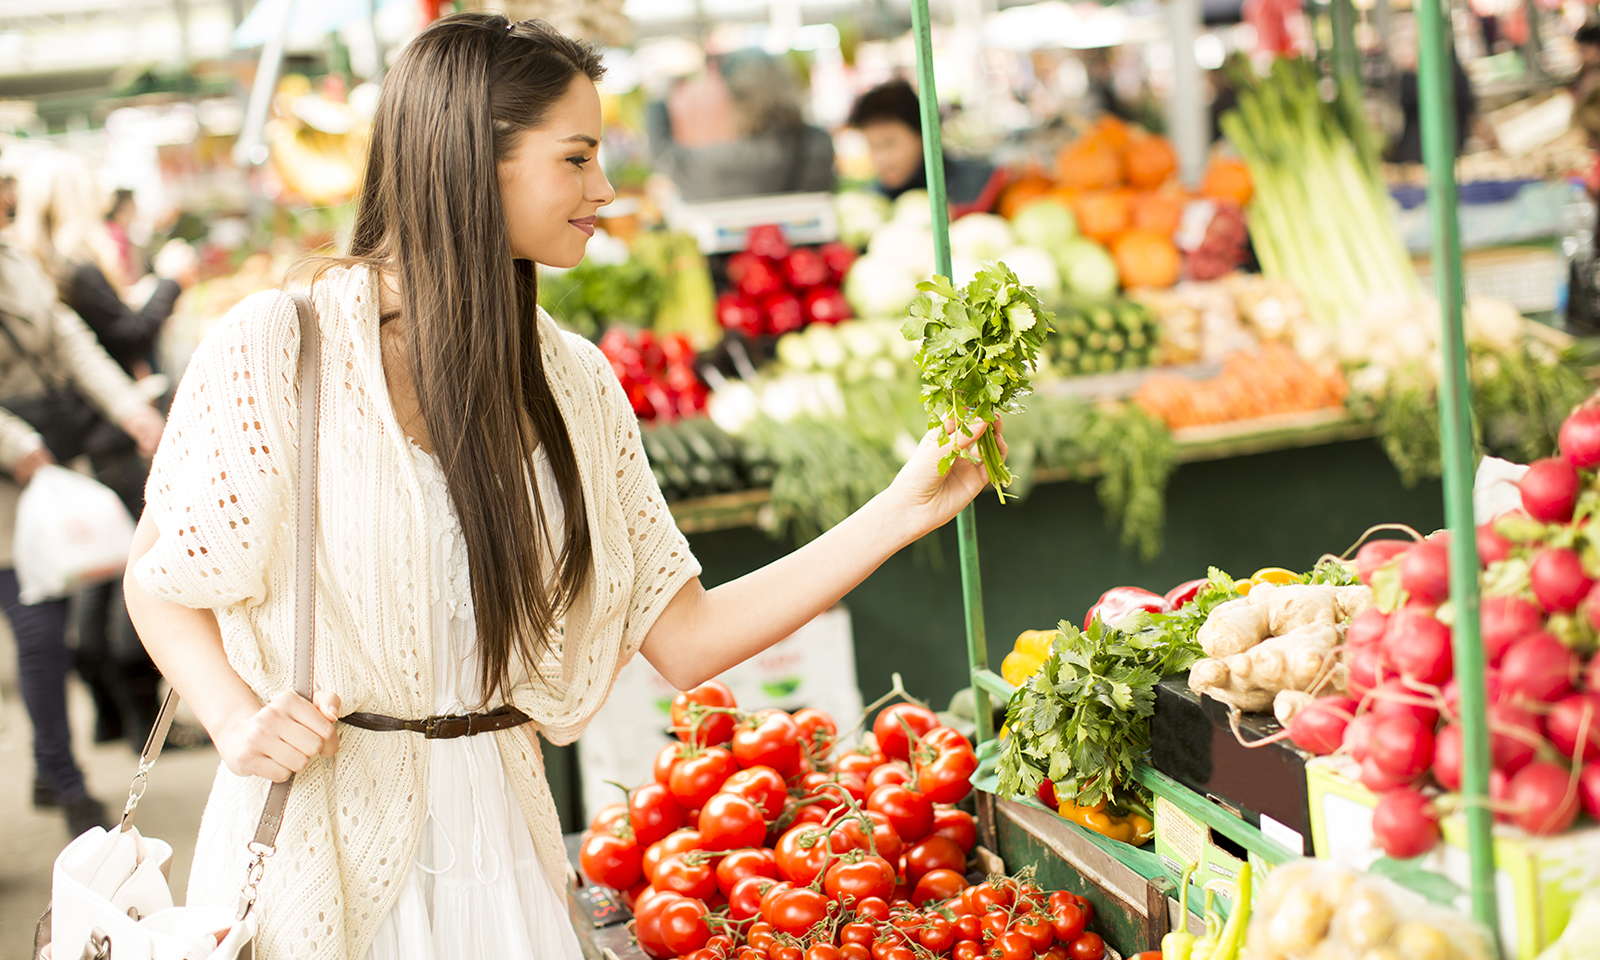 what-do-food-labels-mean-organic-gluten-free-woman-shopping-in-produce-aisle